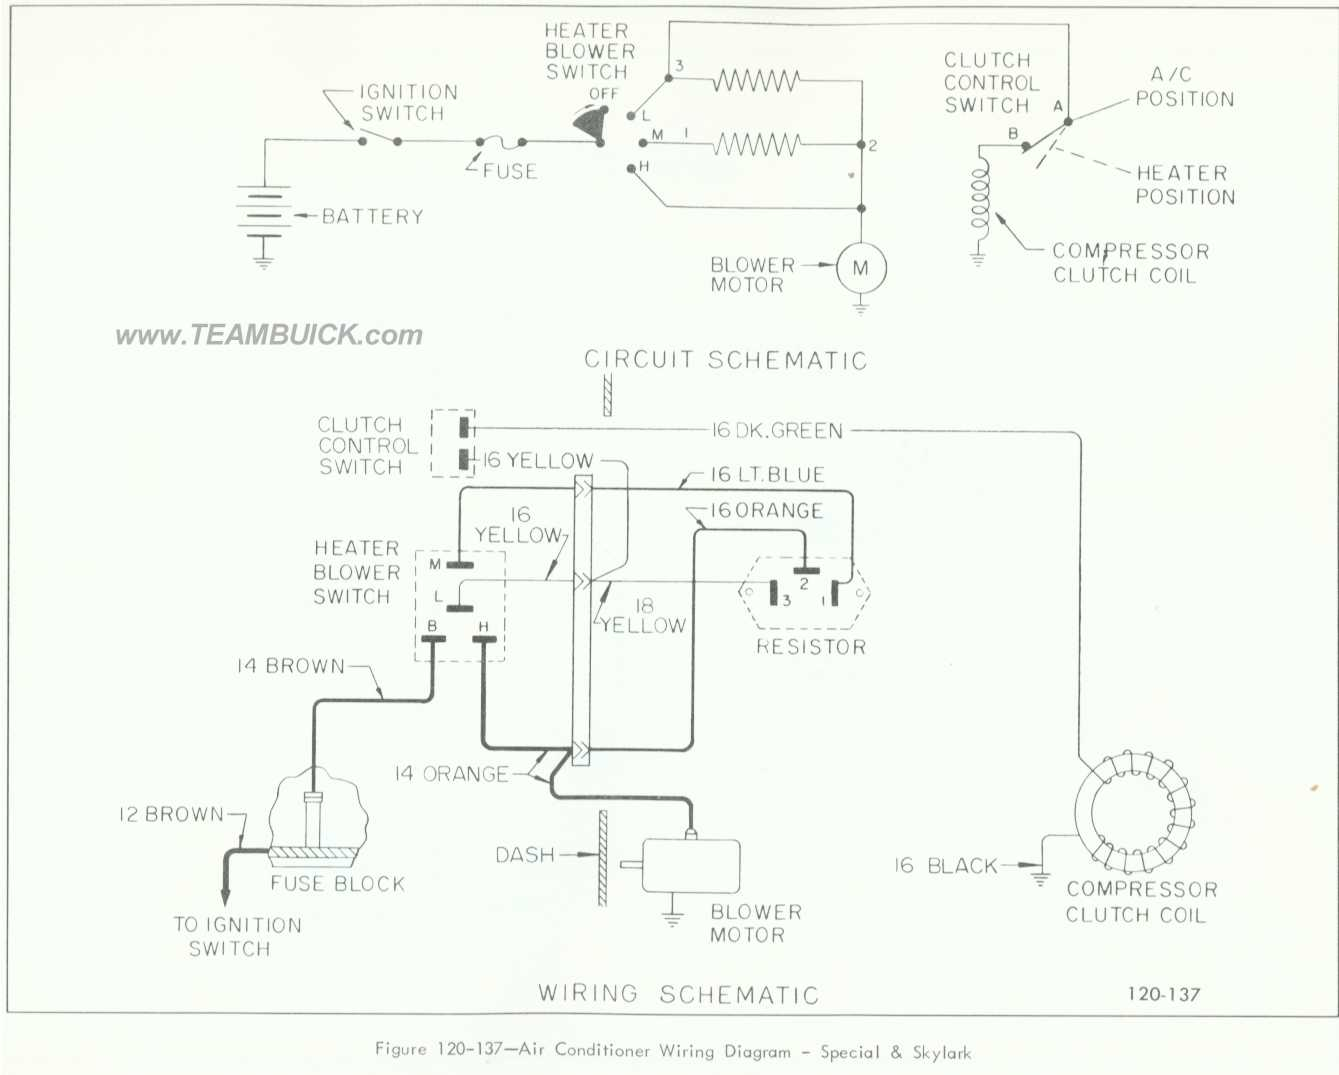 [FPWZ_2684]  1966 Buick Special, Skylark, Air Conditioner Wiring Diagram | 1966 Buick Special Wiring Diagram |  | Team Buick